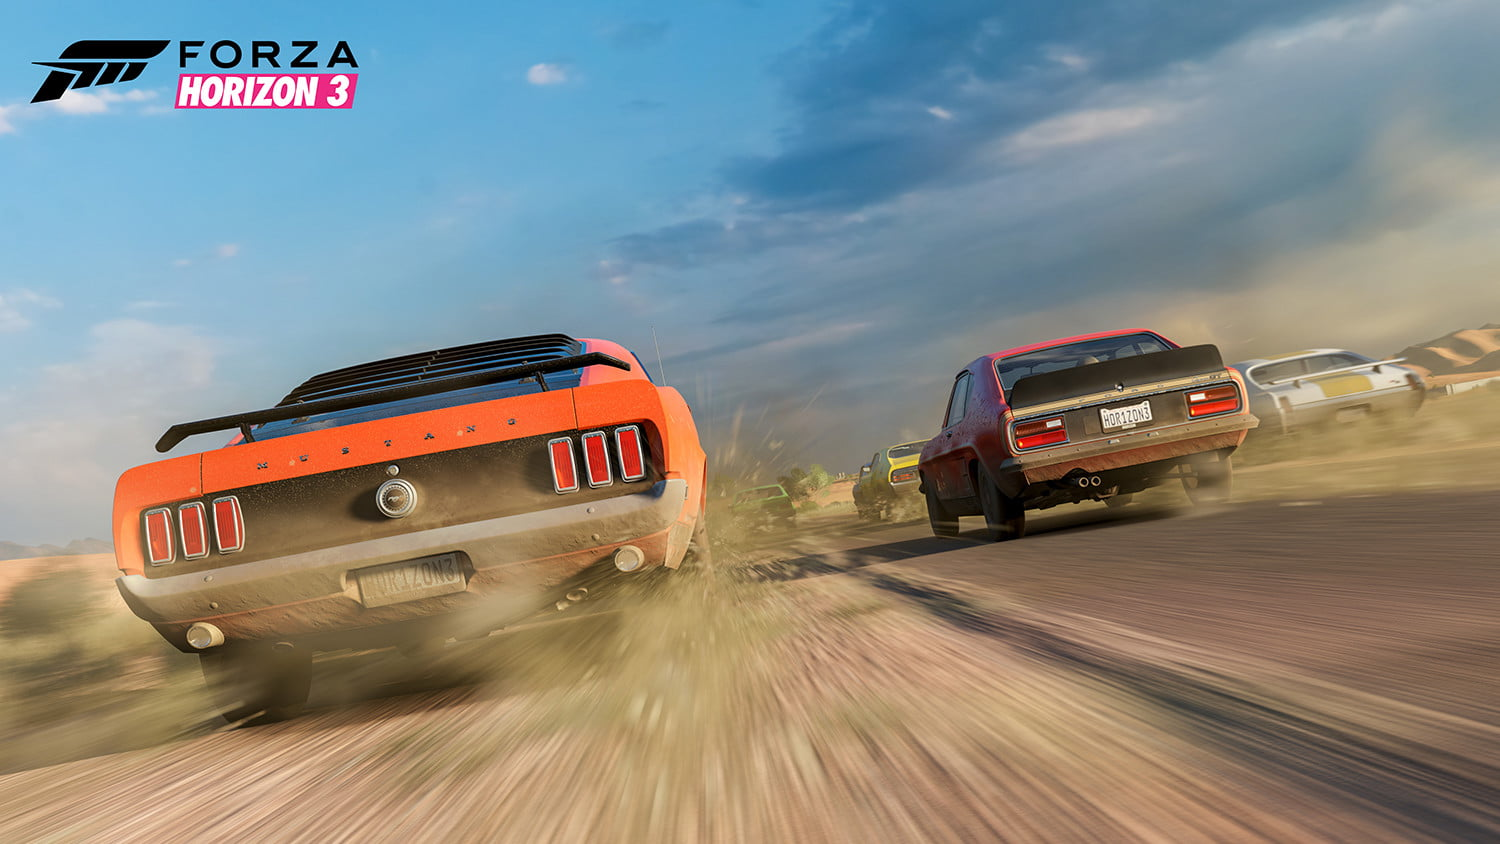 forza horizon 3 apk free download for android